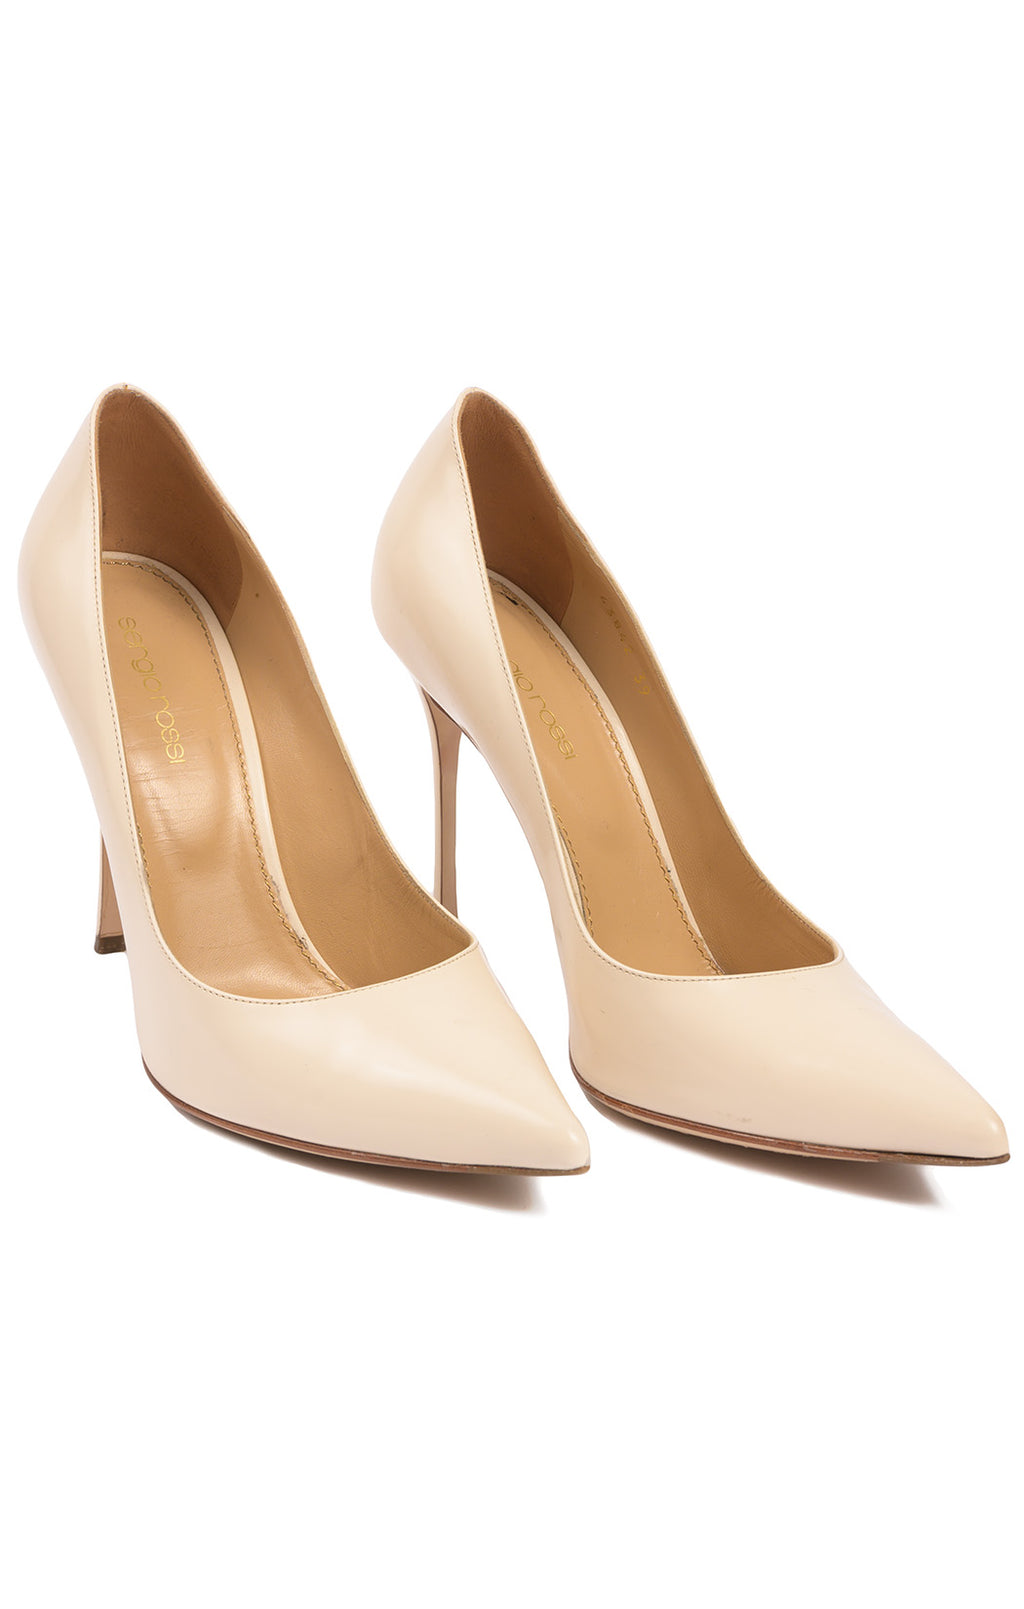 "Beige pointed toe 4.25"" high heeled pump"